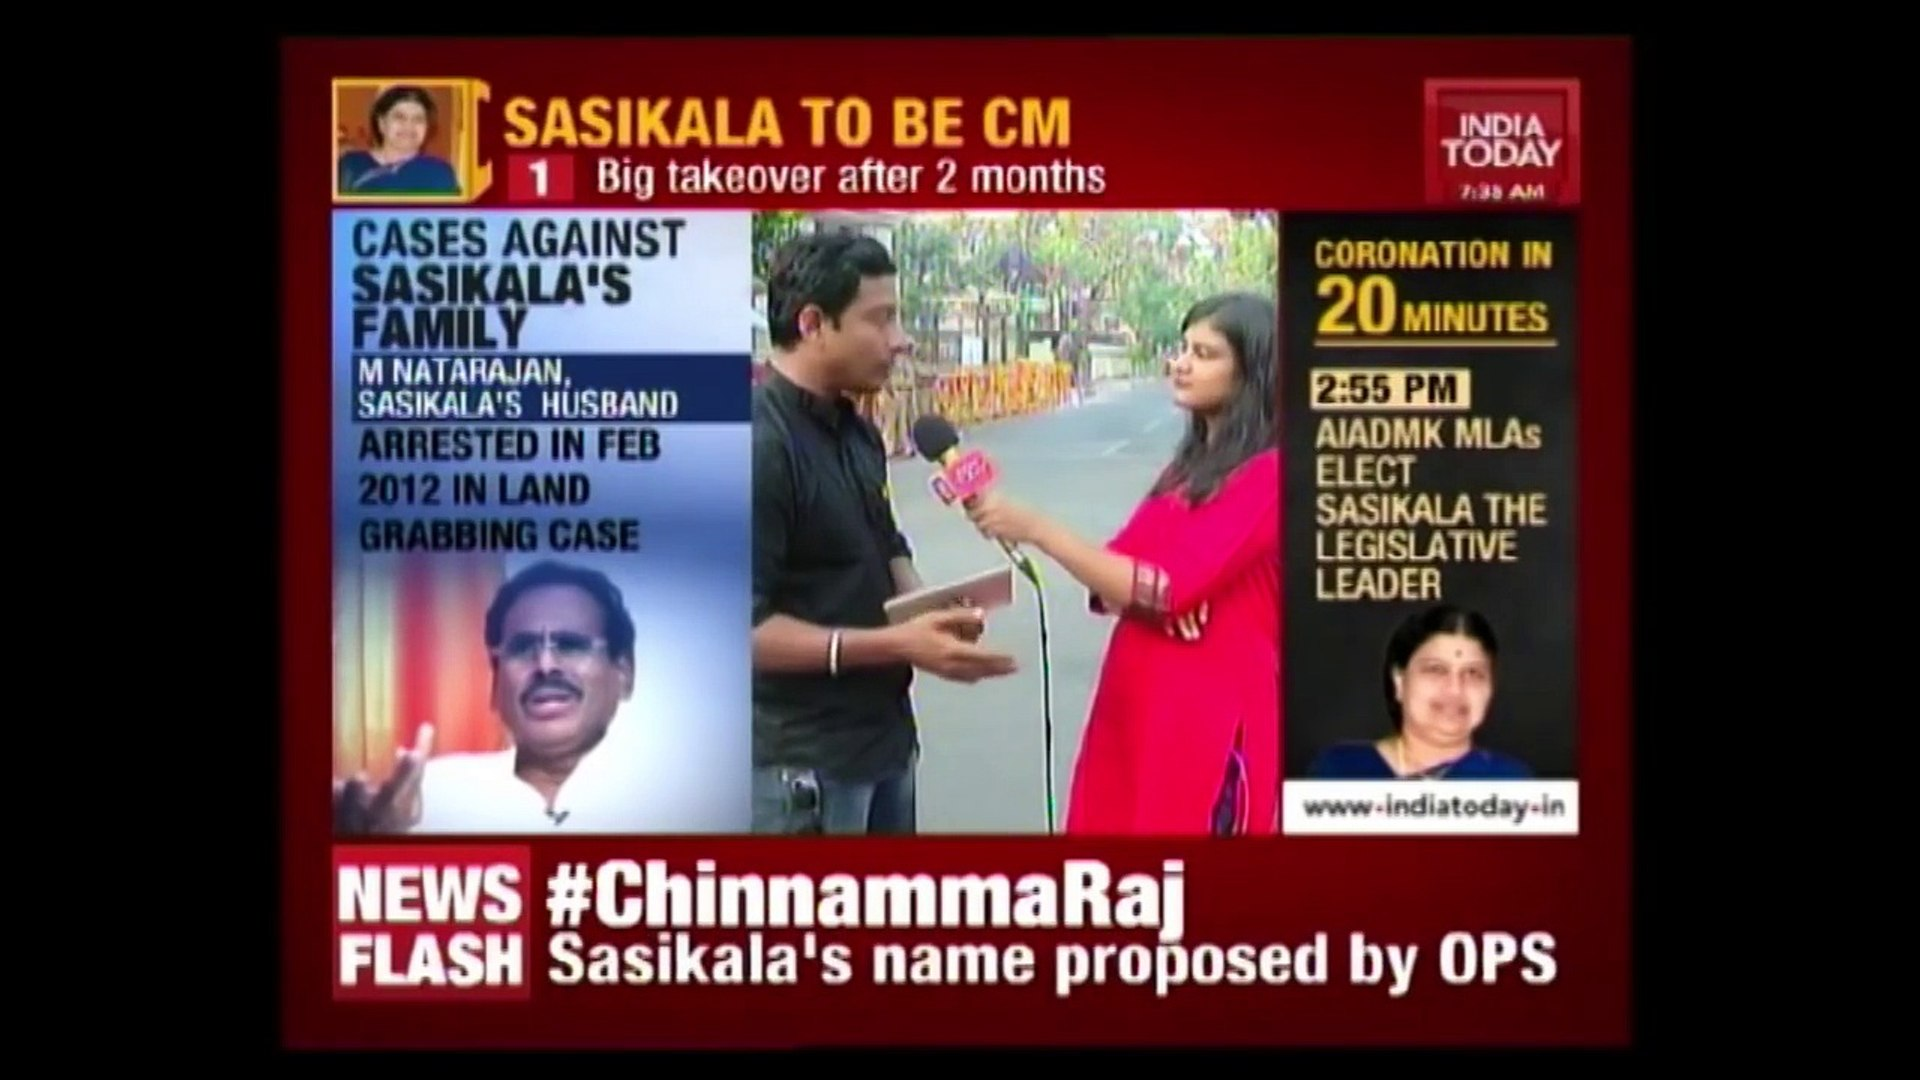 First UP: Oppostition Parties React To Sasikala's Elevation As Tamil Nadu Chief Minister